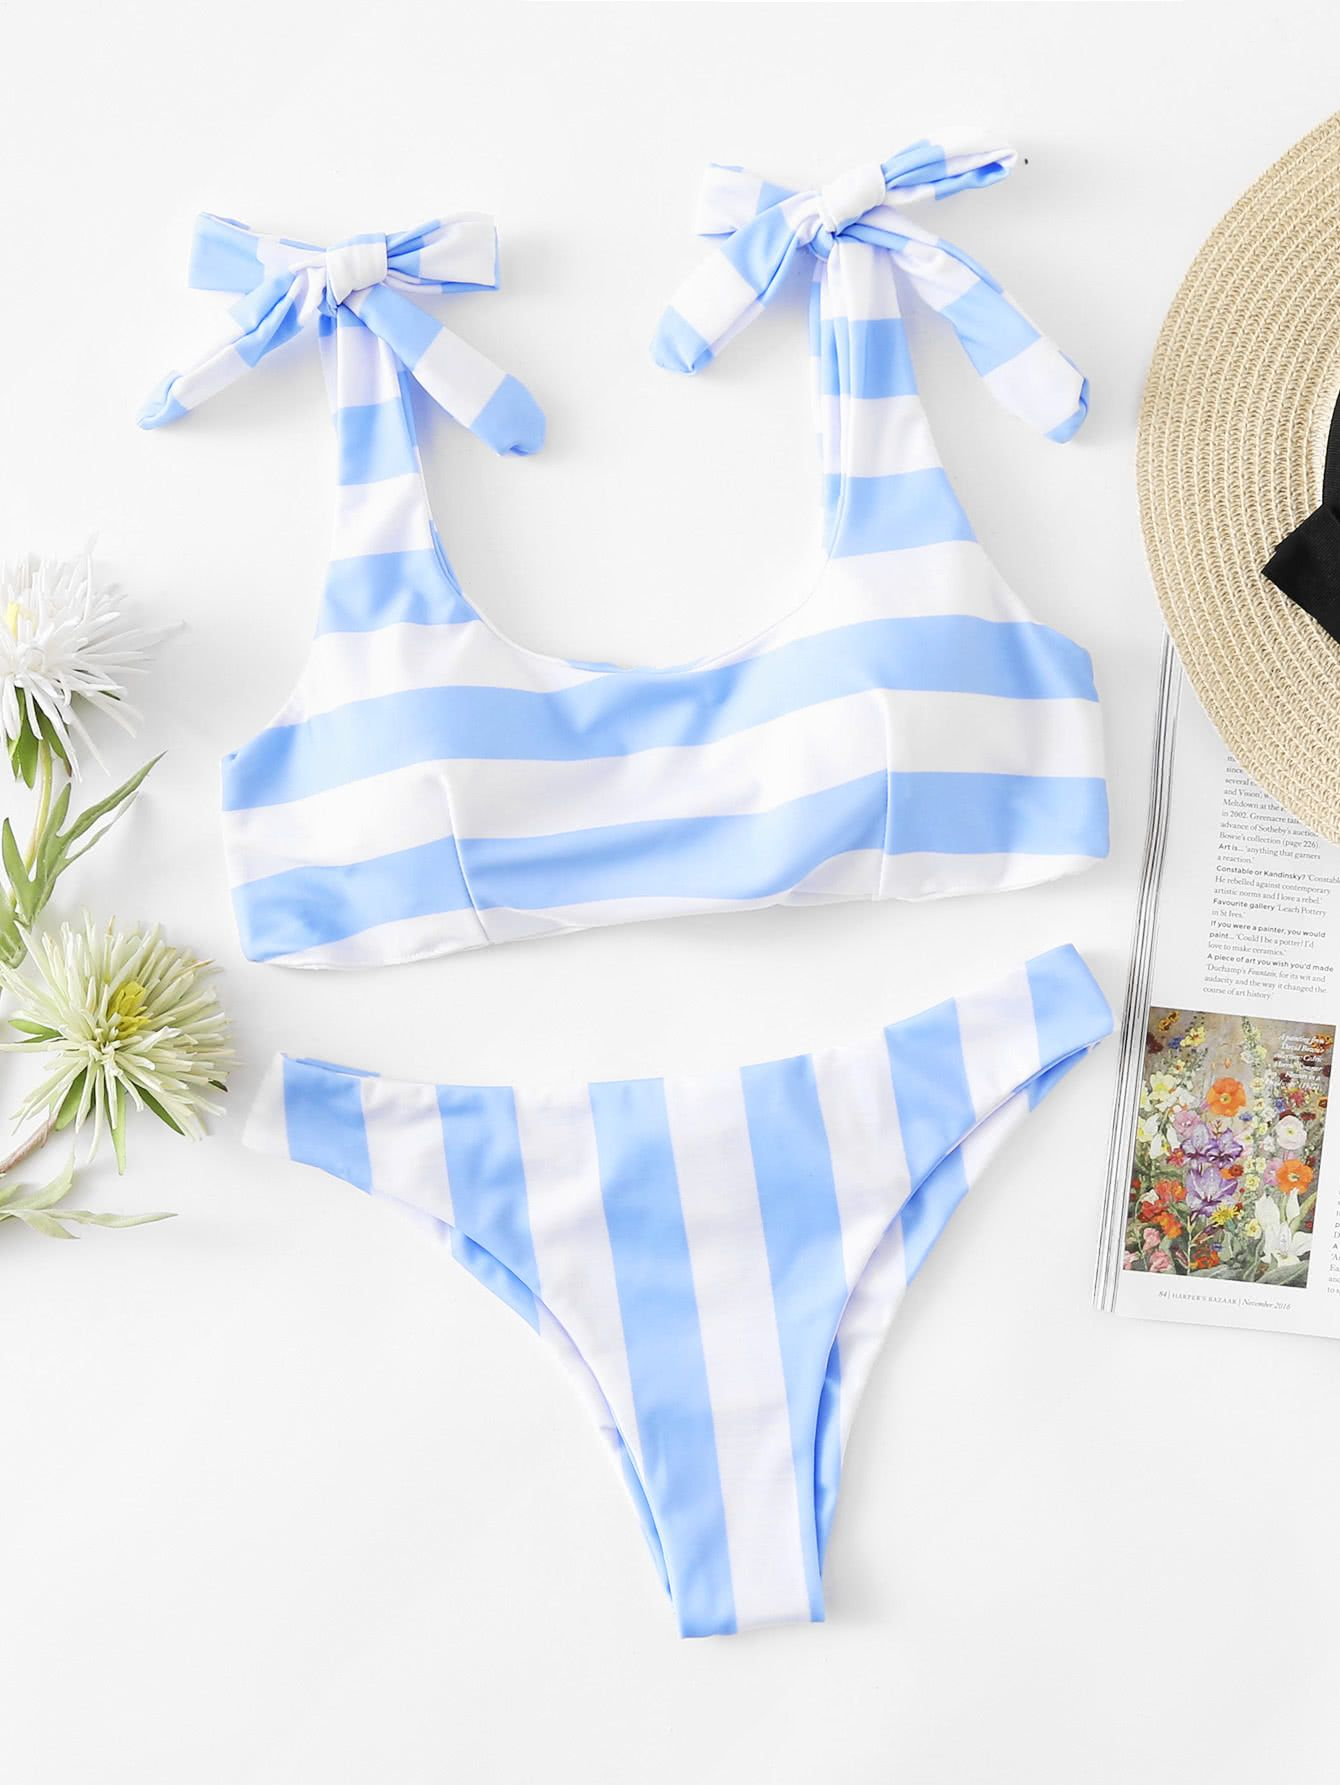 ce8efe70ffd40 Blue and white seaside stripe bikini inexpensive swimsuit cheap two piece  swimwear that is modest scoop neck with bow tie straps light blue preppy ...